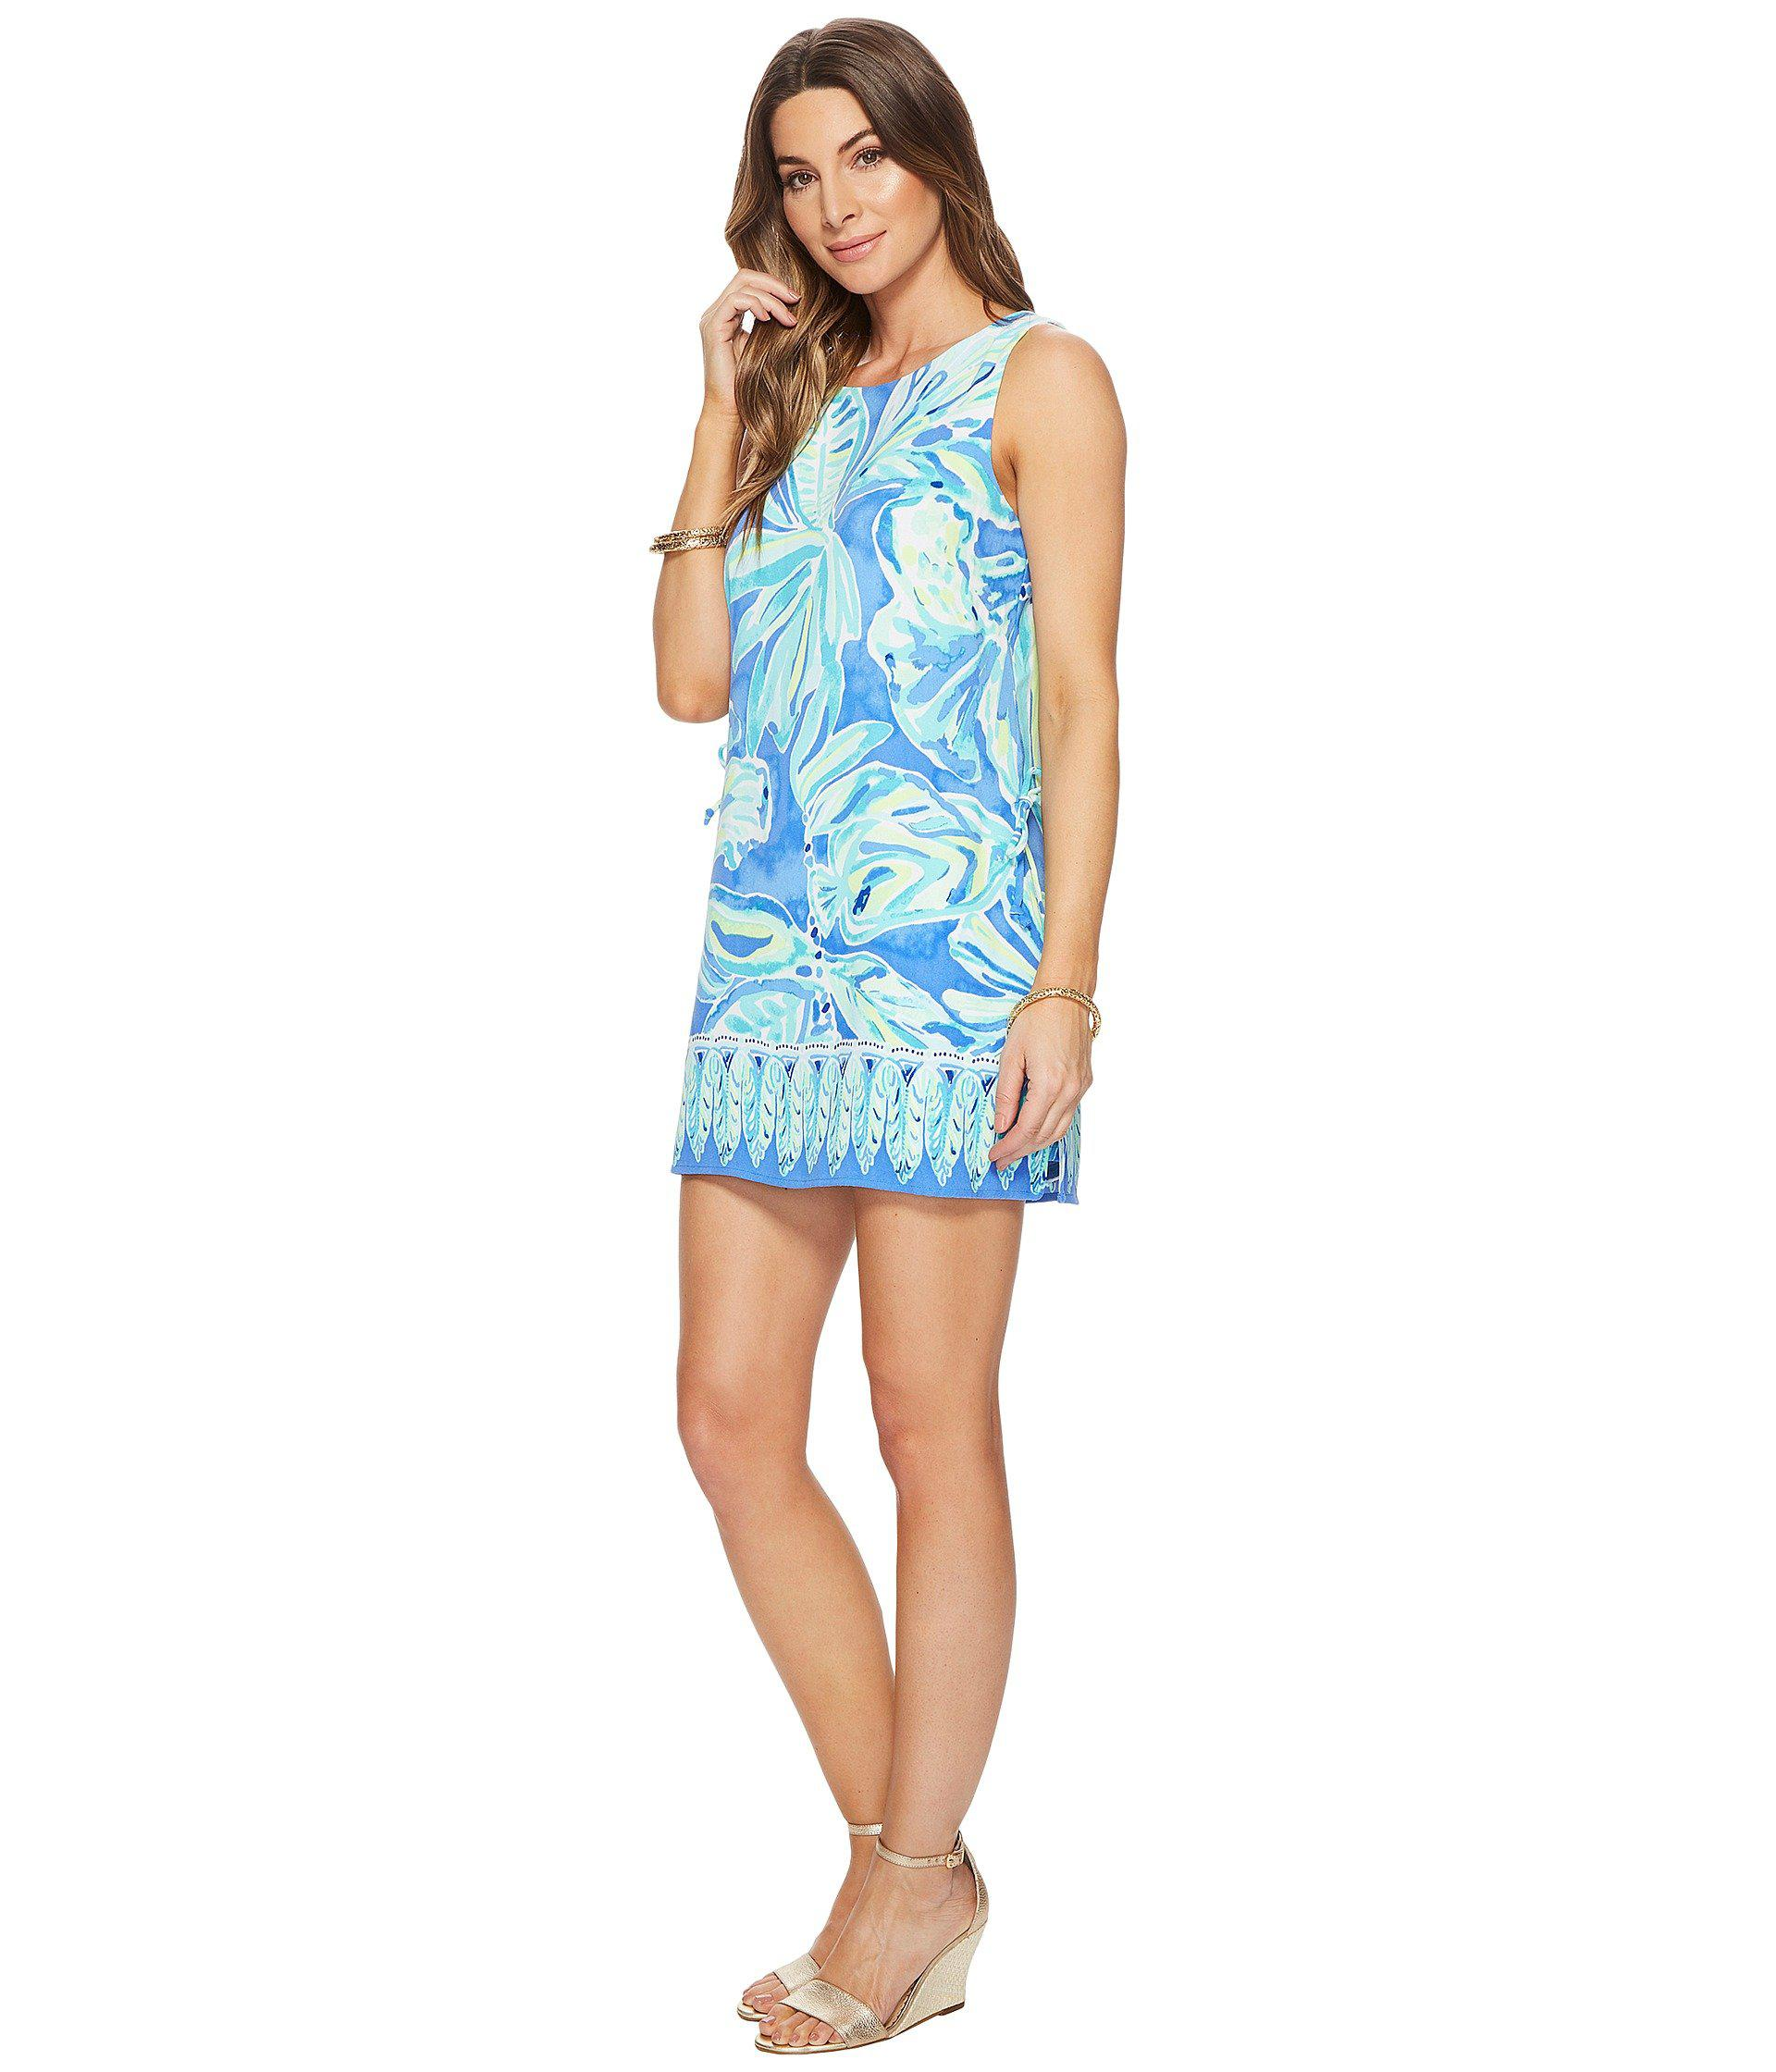 87e00fe98a4 Lyst - Lilly Pulitzer Donna Romper in Blue